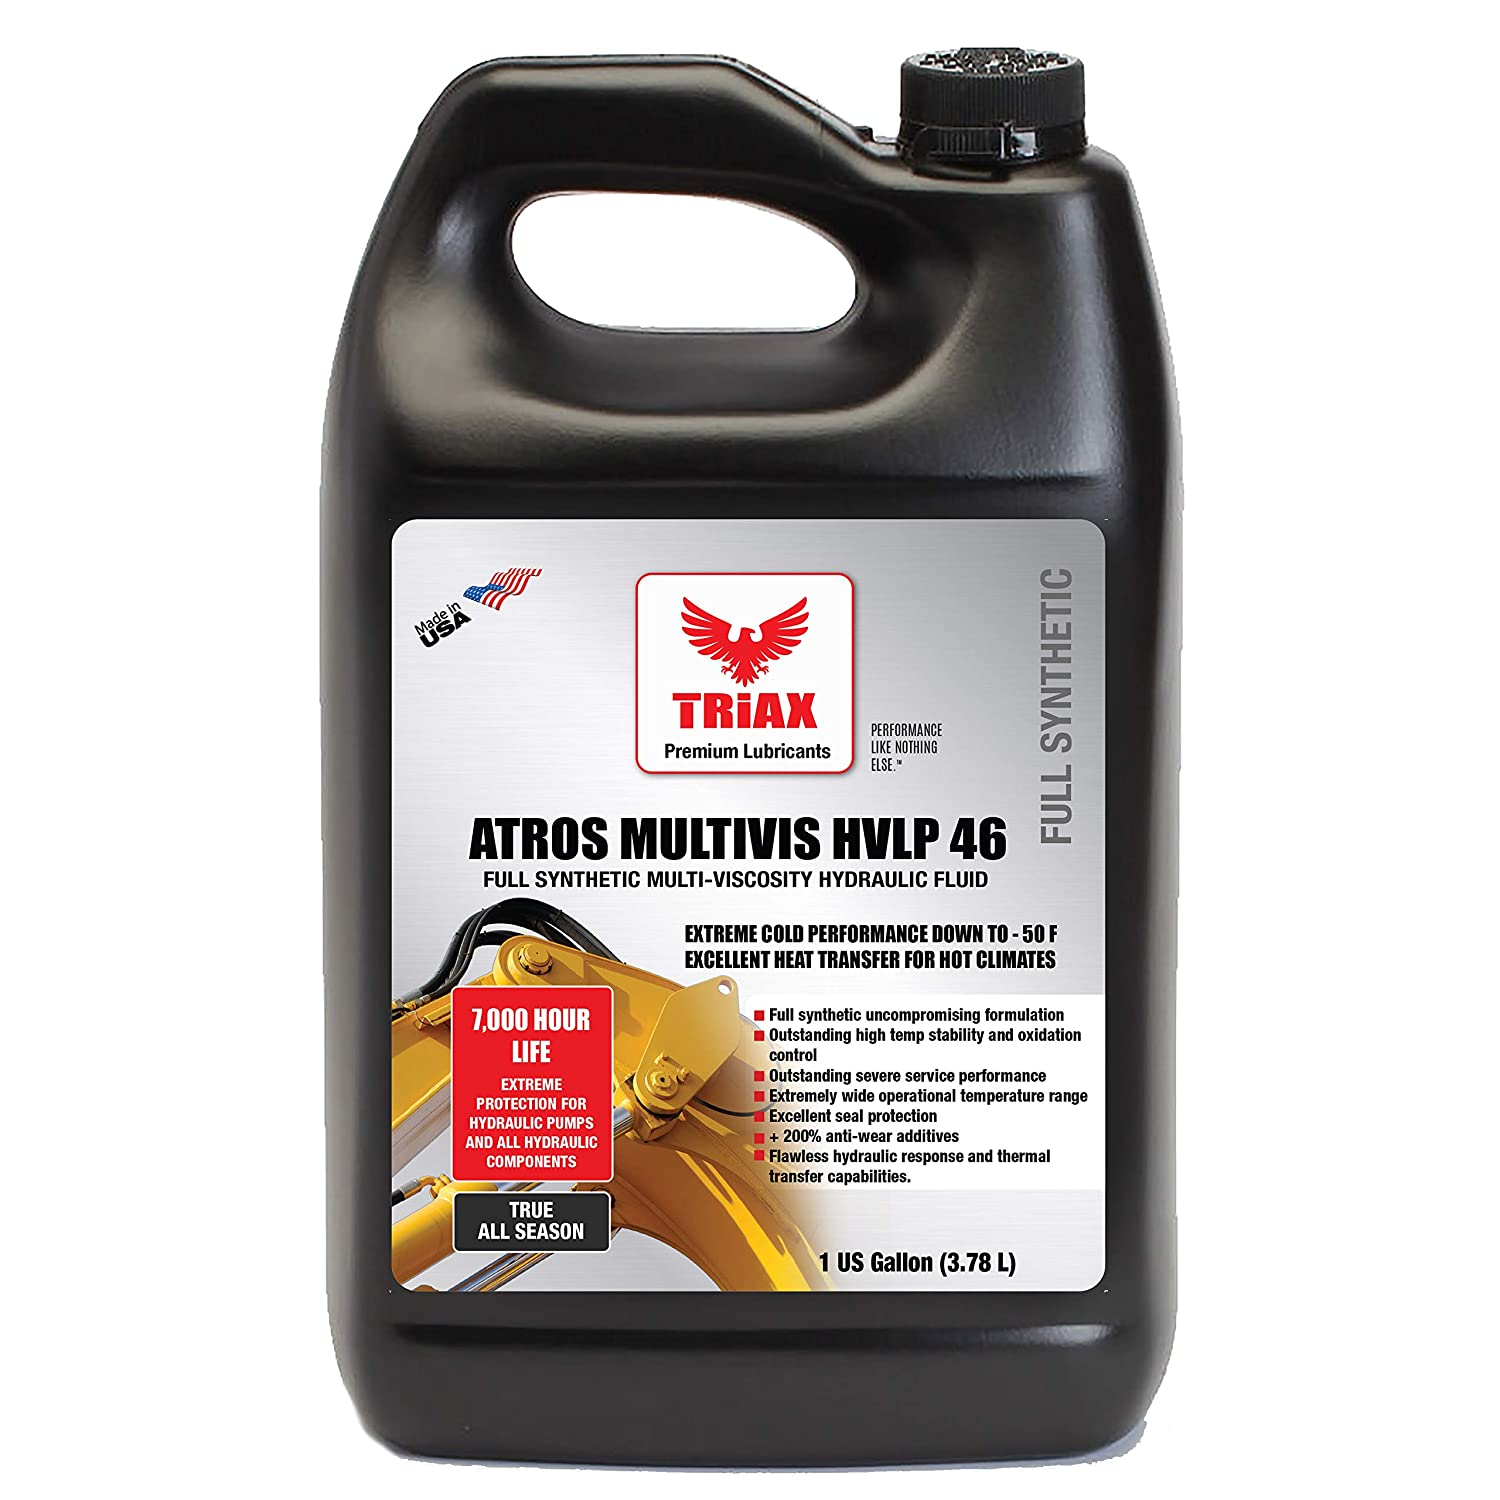 Triax ATROS Multi-VIS AW 46 Full Synthetic Hydraulic Oil - 300% ADDITIVE Anti-WEAR Boost, 7,000-10,000 Hour Life, Arctic Grade - 54 Cold Flow & HIGH Temp ...